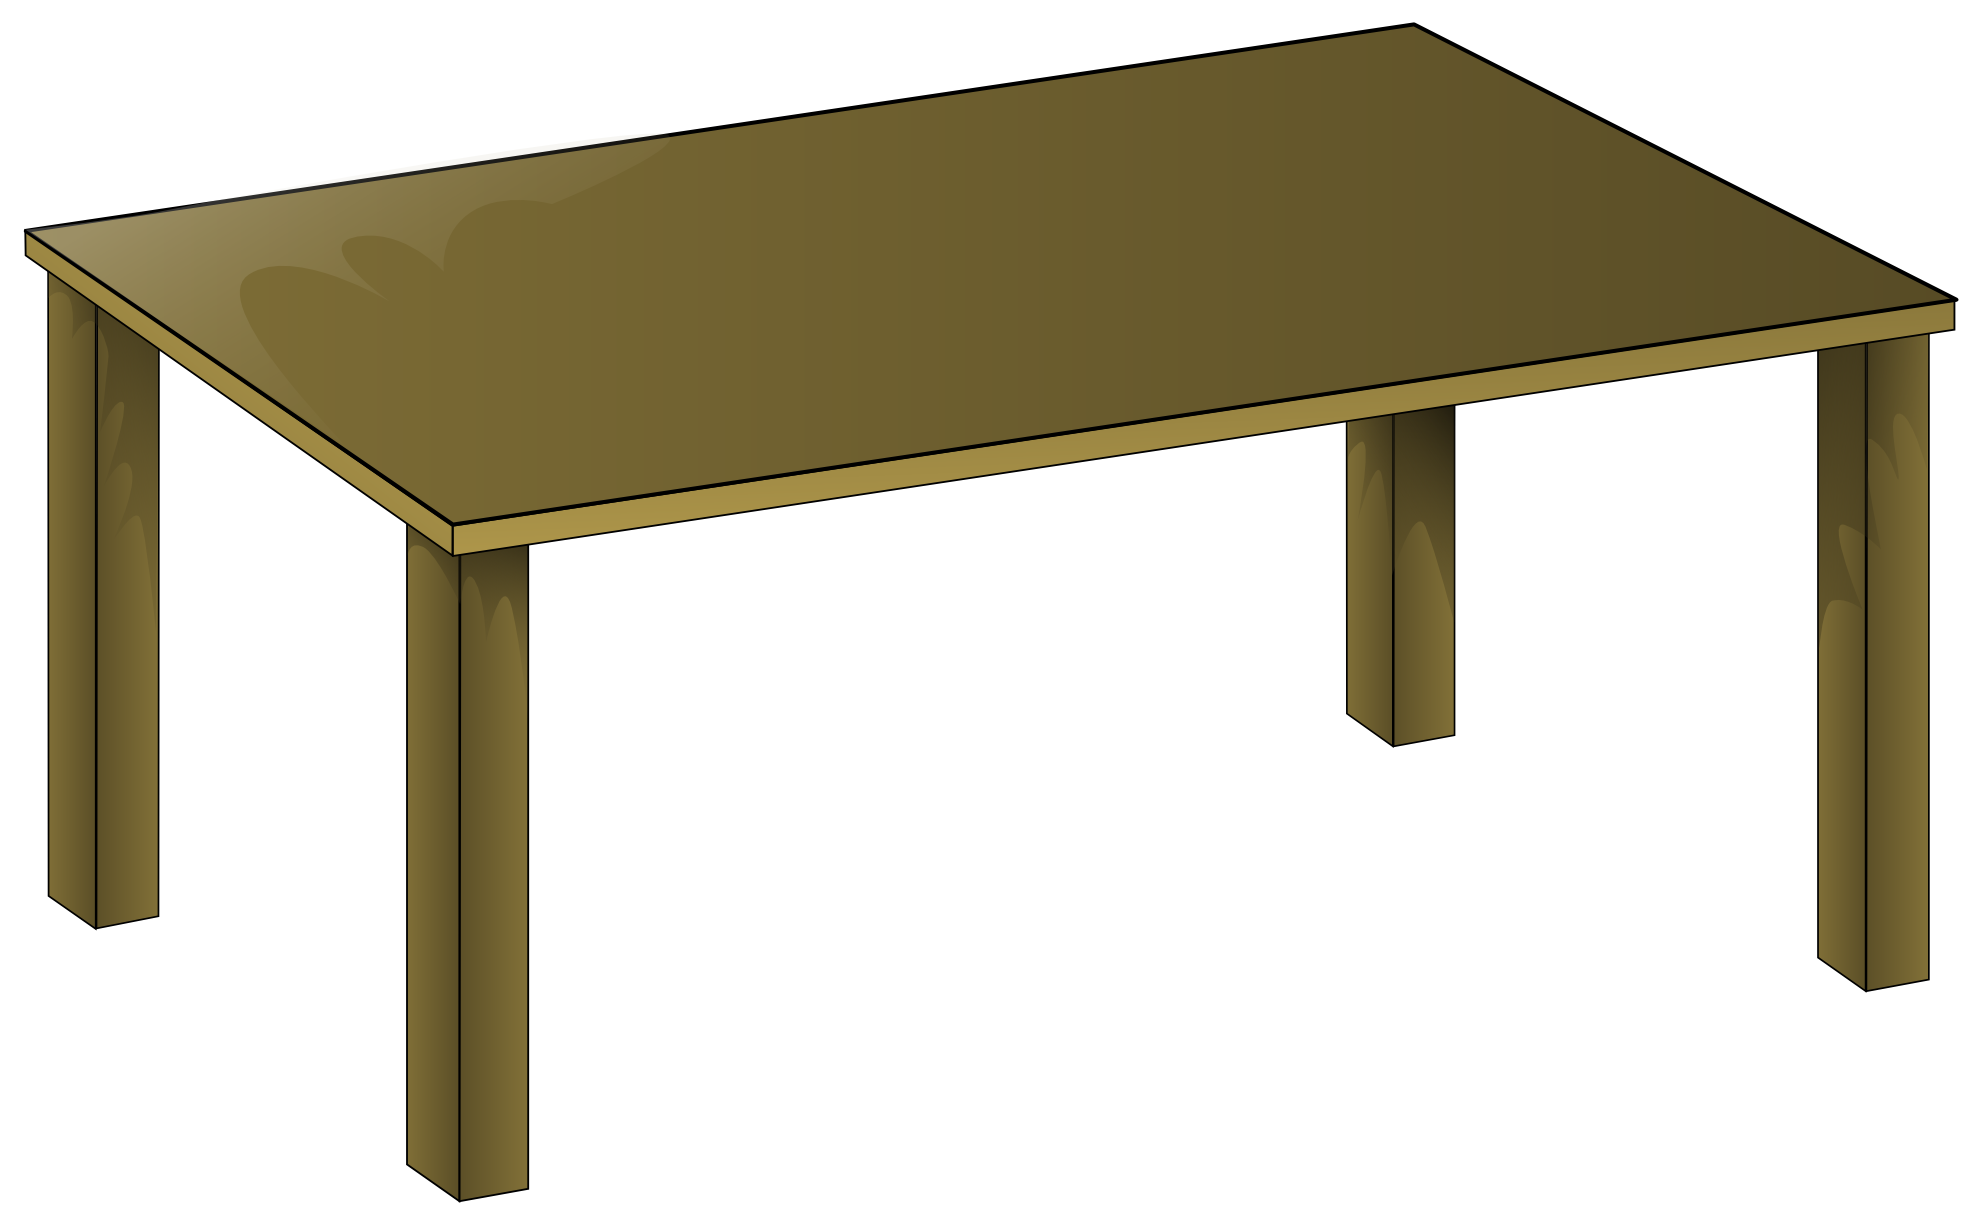 Tables clipart graphic library download Table And Chairs Clipart | Free download best Table And Chairs ... graphic library download